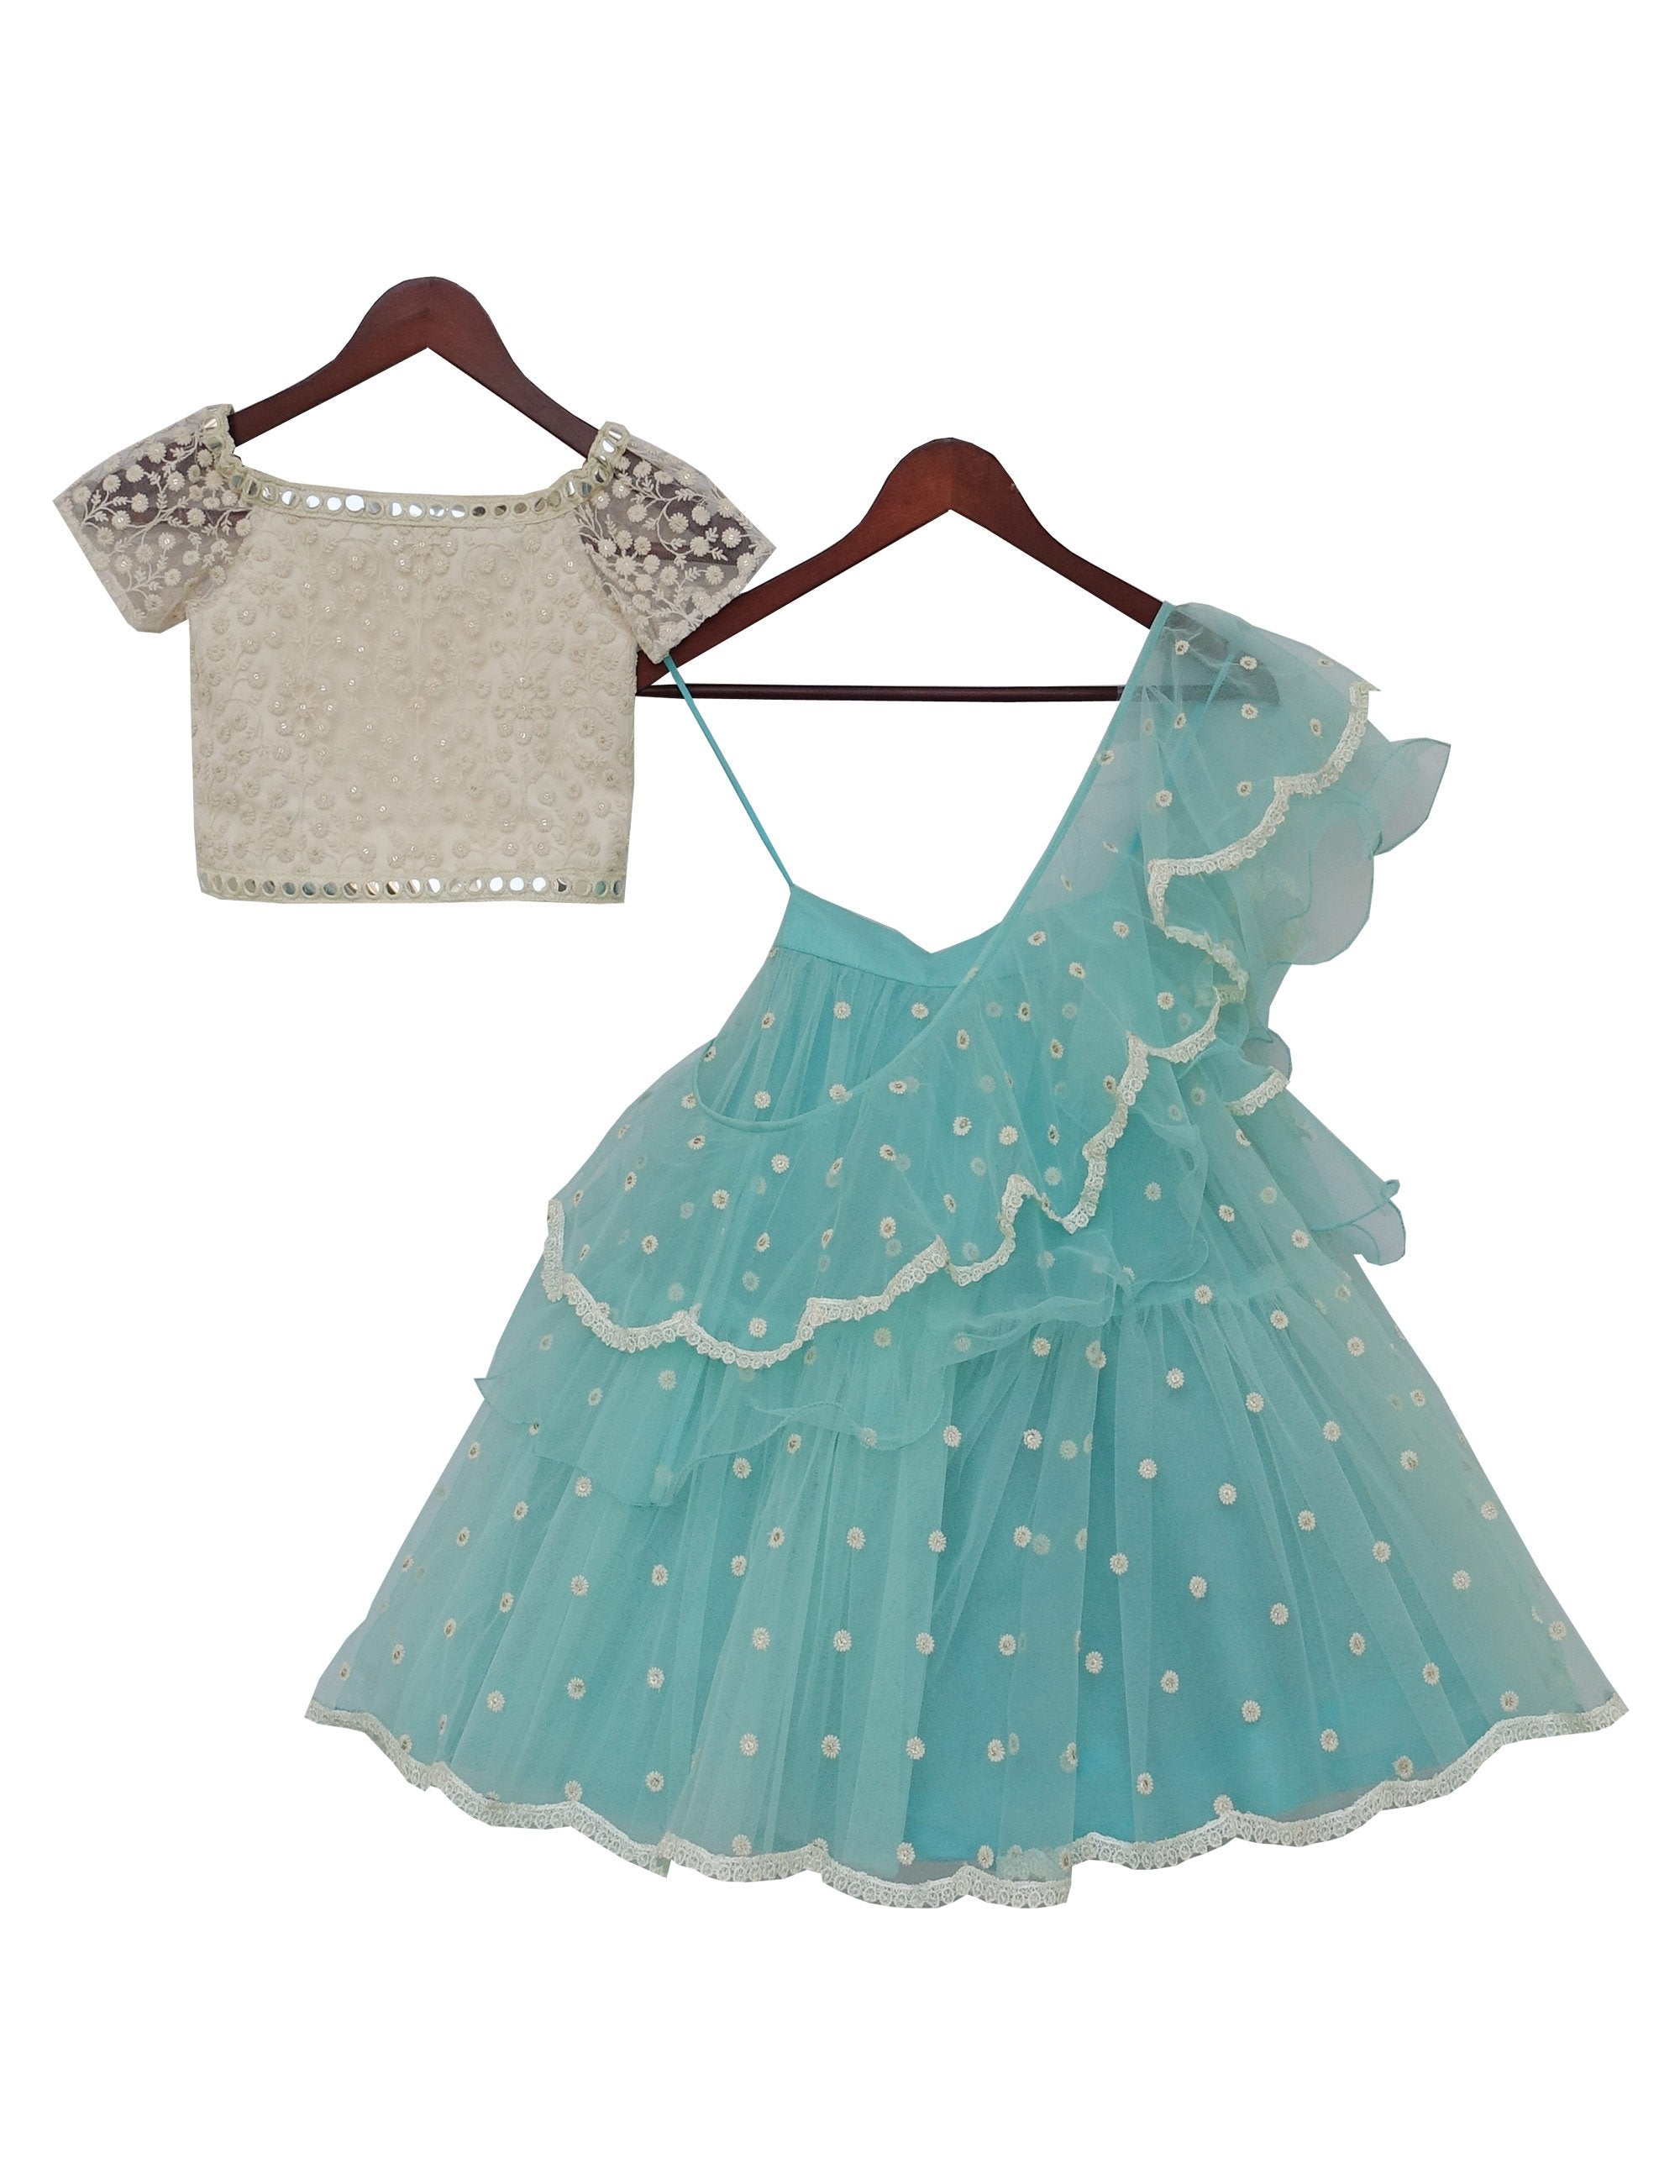 Offwhite Embroidery Choli with Aqua Net Lehenga for girls